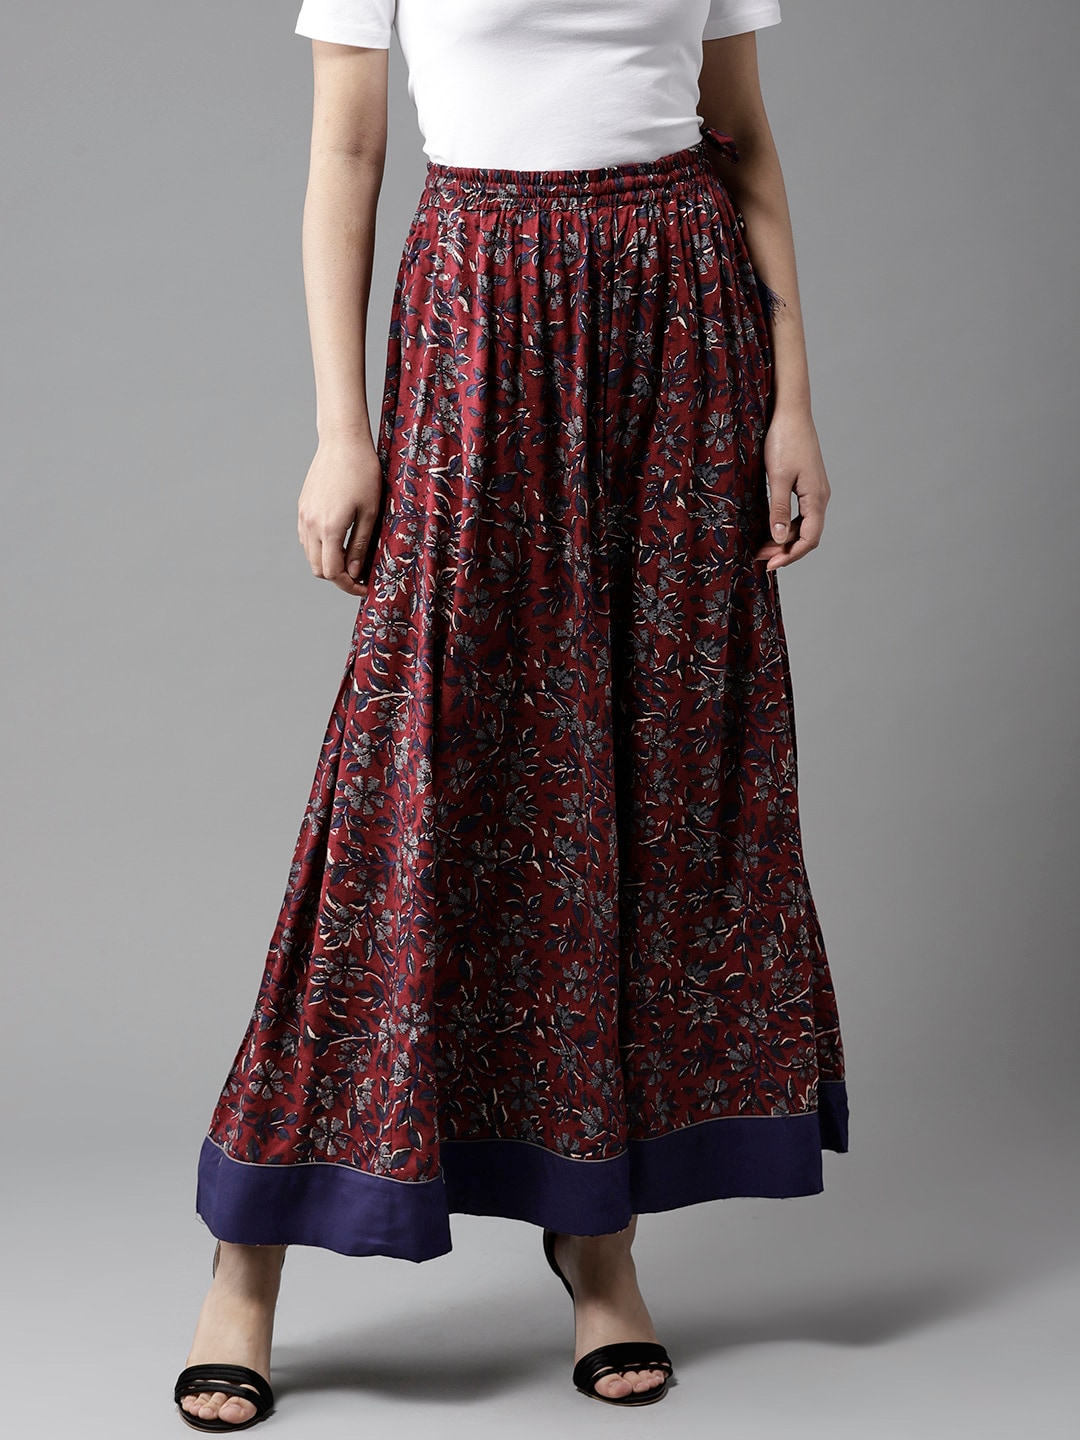 92714a90d Buy AKS Maroon & Mustard Yellow Ethnic Print Flared Maxi Skirt ...